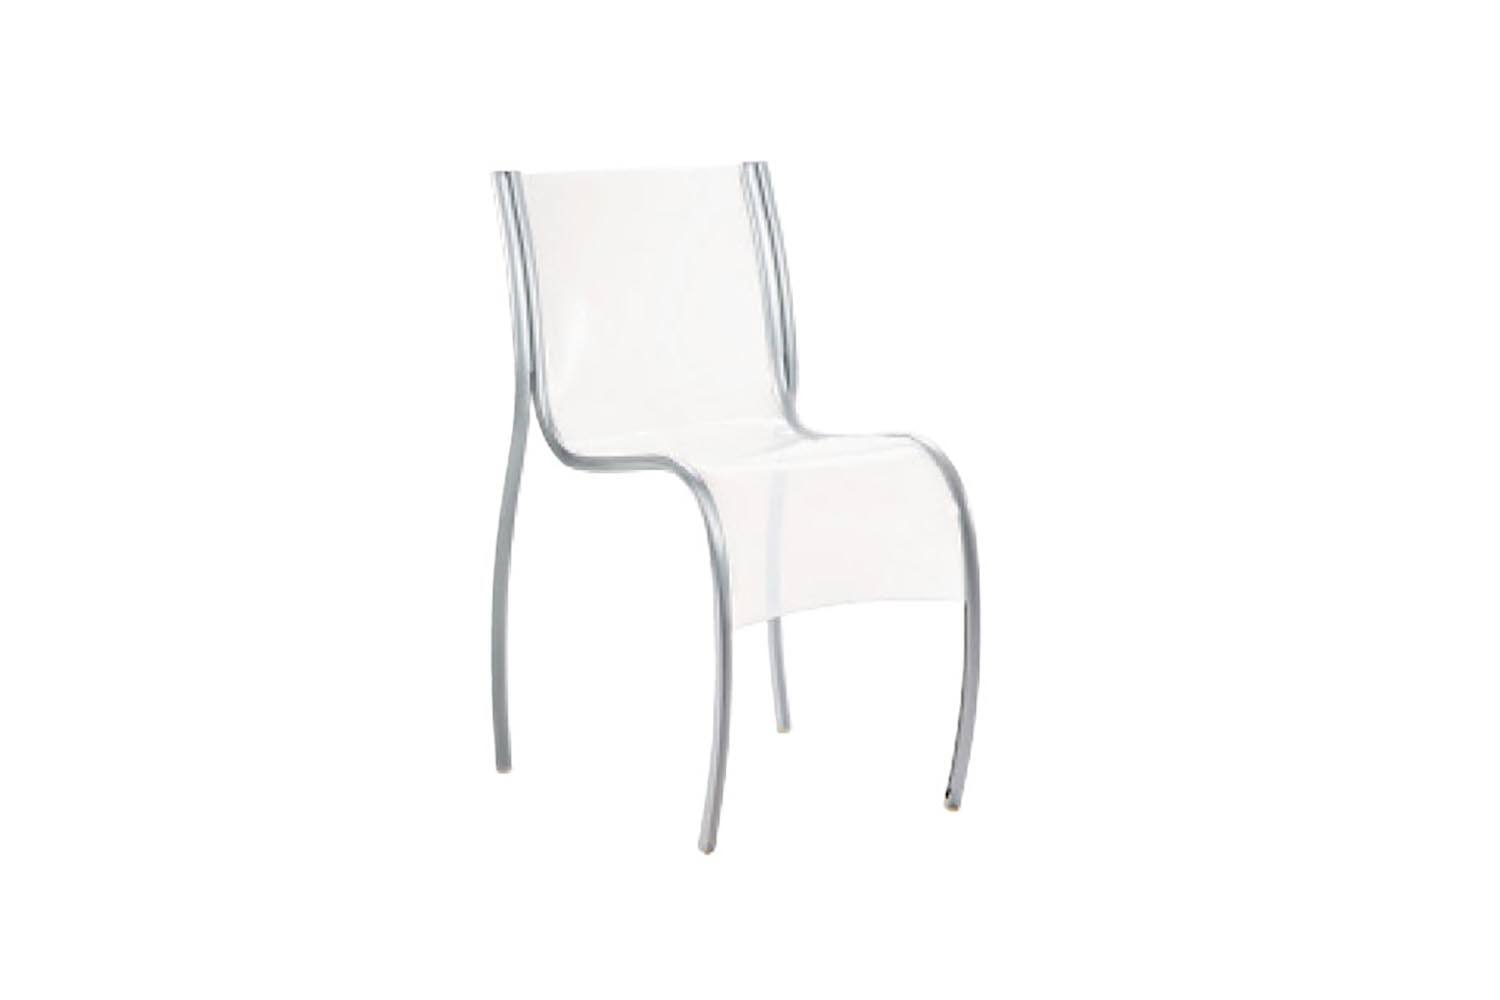 FPE Chair by Ron Arad for Kartell